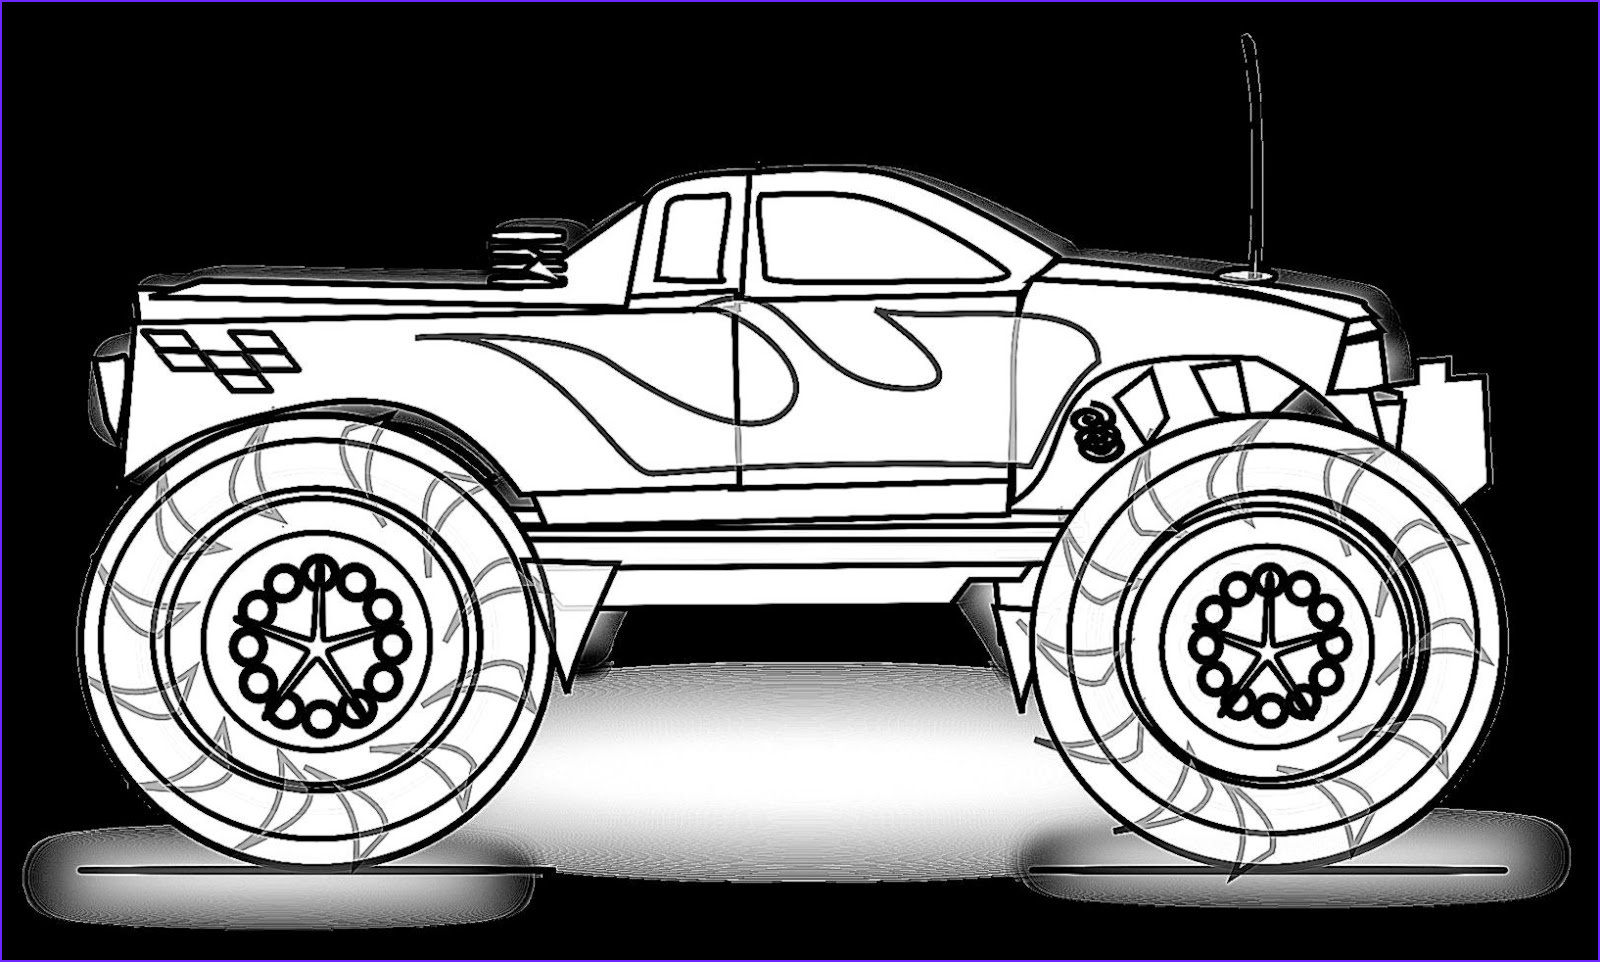 Printable Truck Coloring Pages Inspirational Image Monster Truck Coloring Pages for Boys Free Coloring Pages